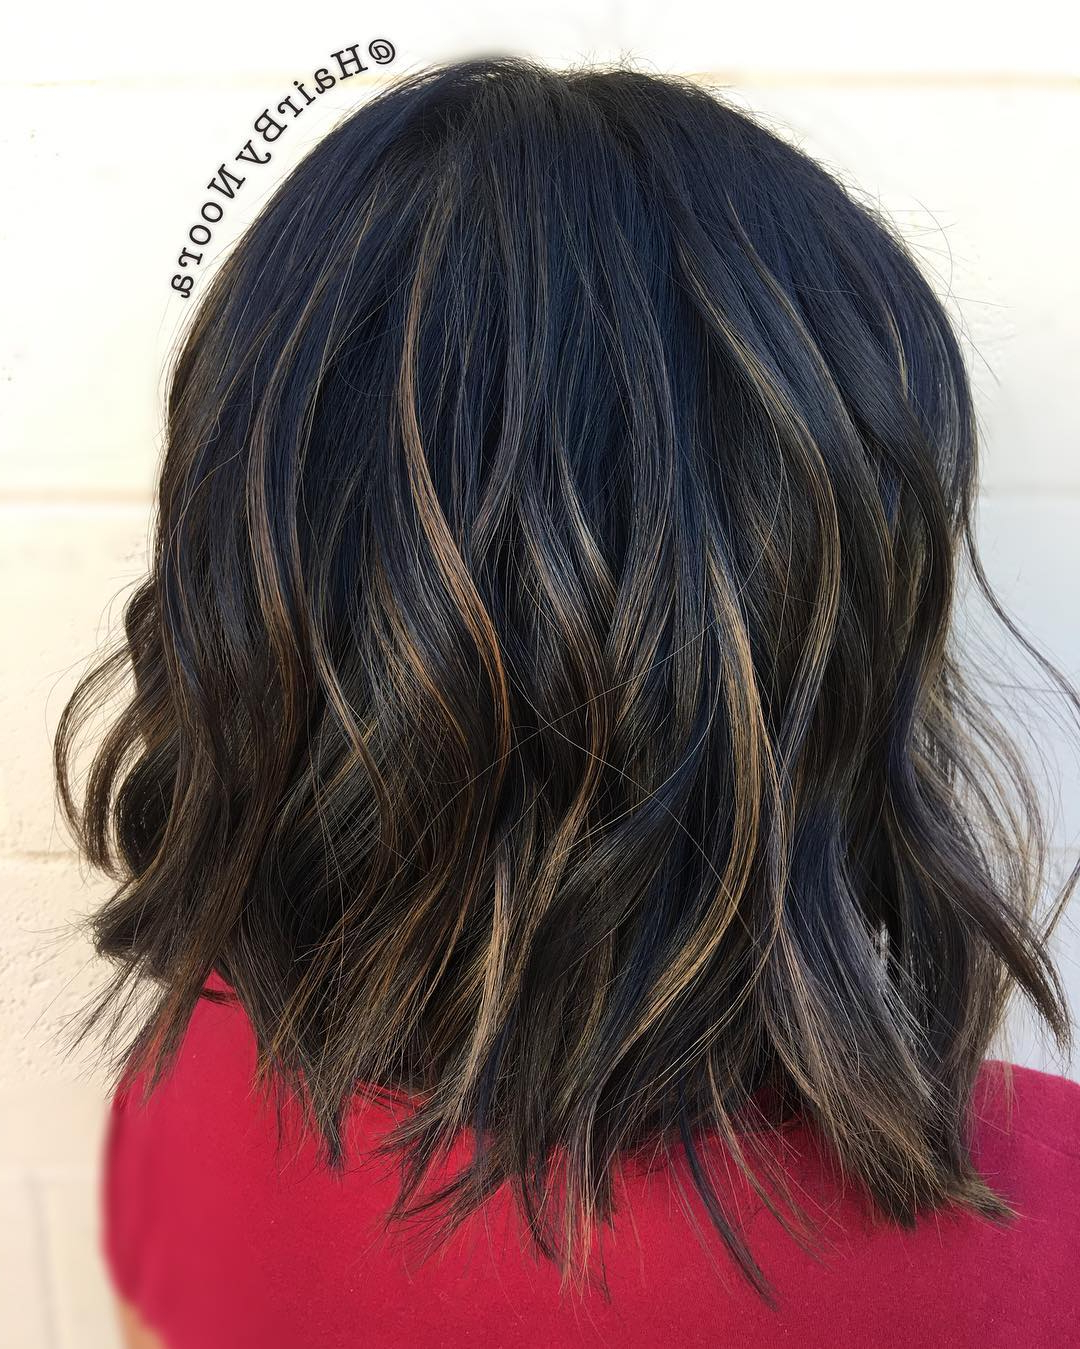 How To Pull Off Medium Length Haircuts And Hairstyles In 2019 For Shoulder Length Choppy Hairstyles (View 17 of 20)